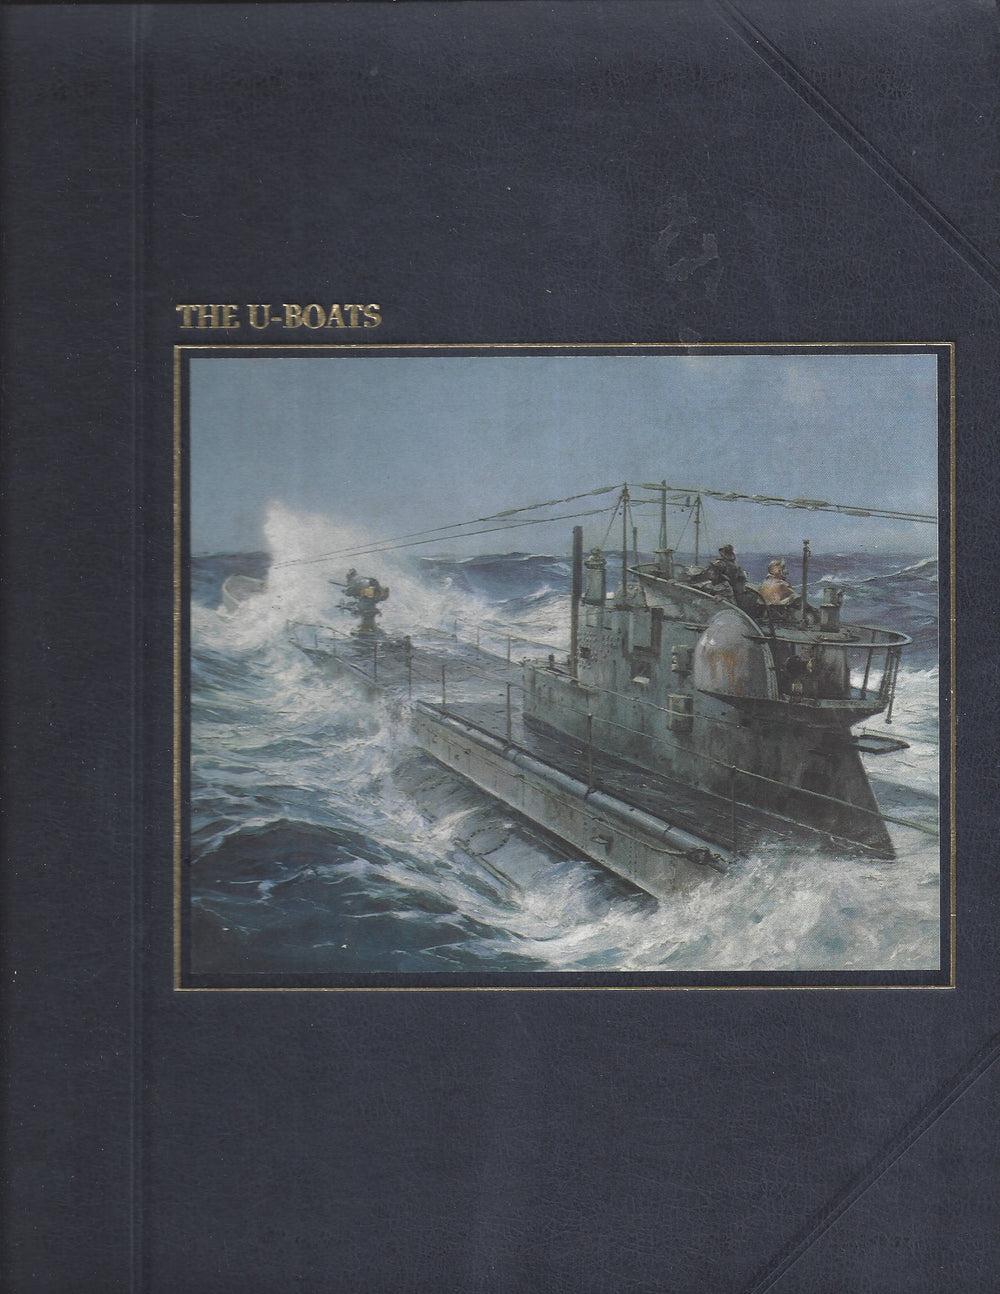 TIME-LIFE: The Seafarers-The U-Boats by Douglas Botting